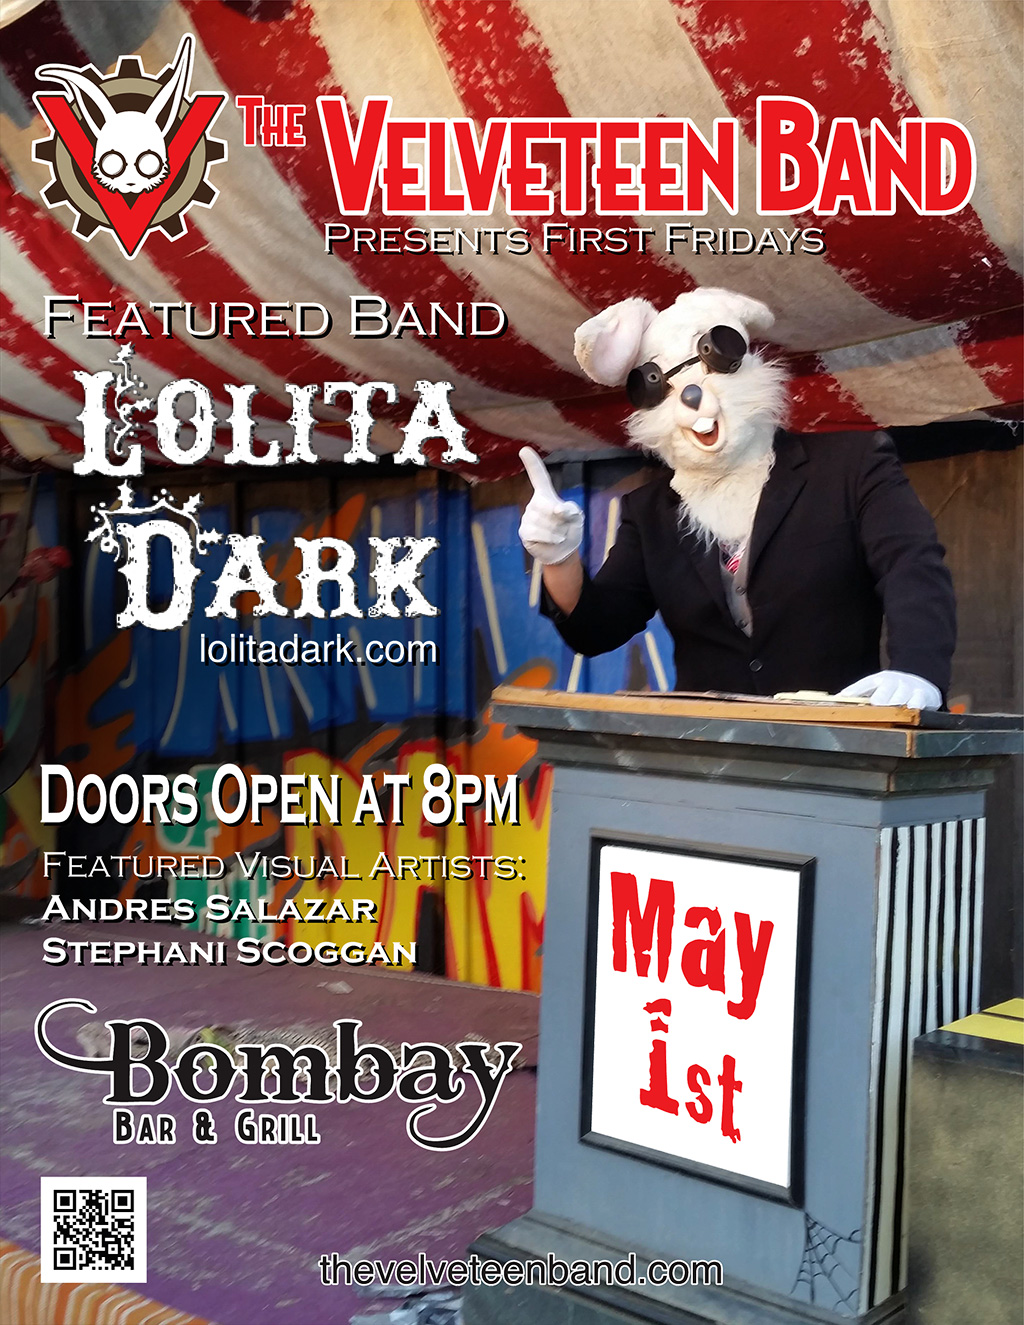 First Fridays at Bombay featuring Lolita Dark